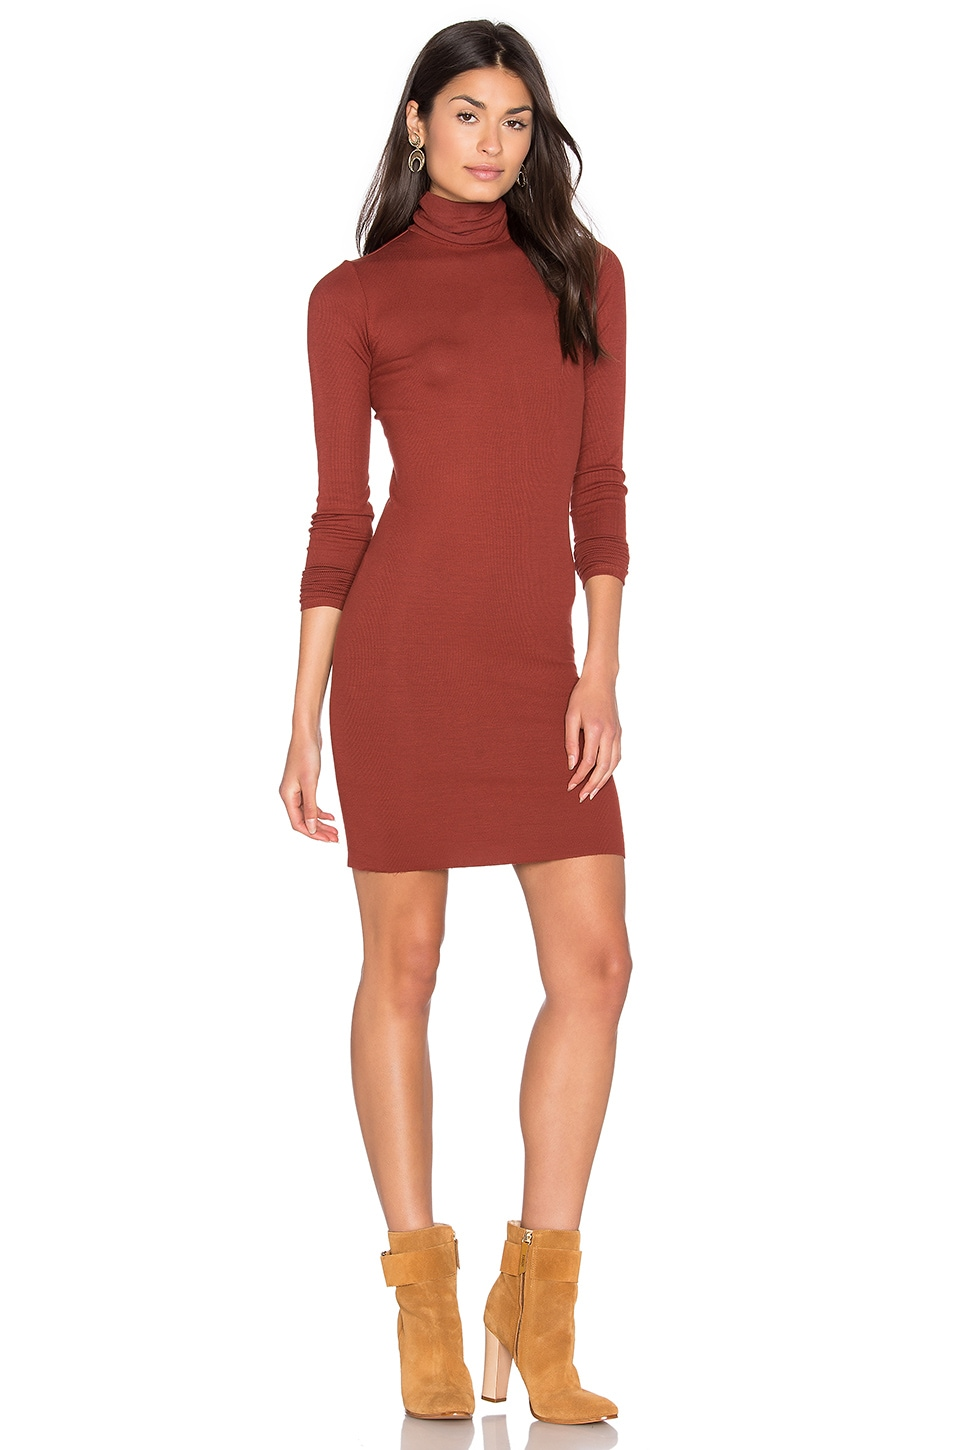 Rib Long Sleeve Turtleneck Mini Dress by Enza Costa